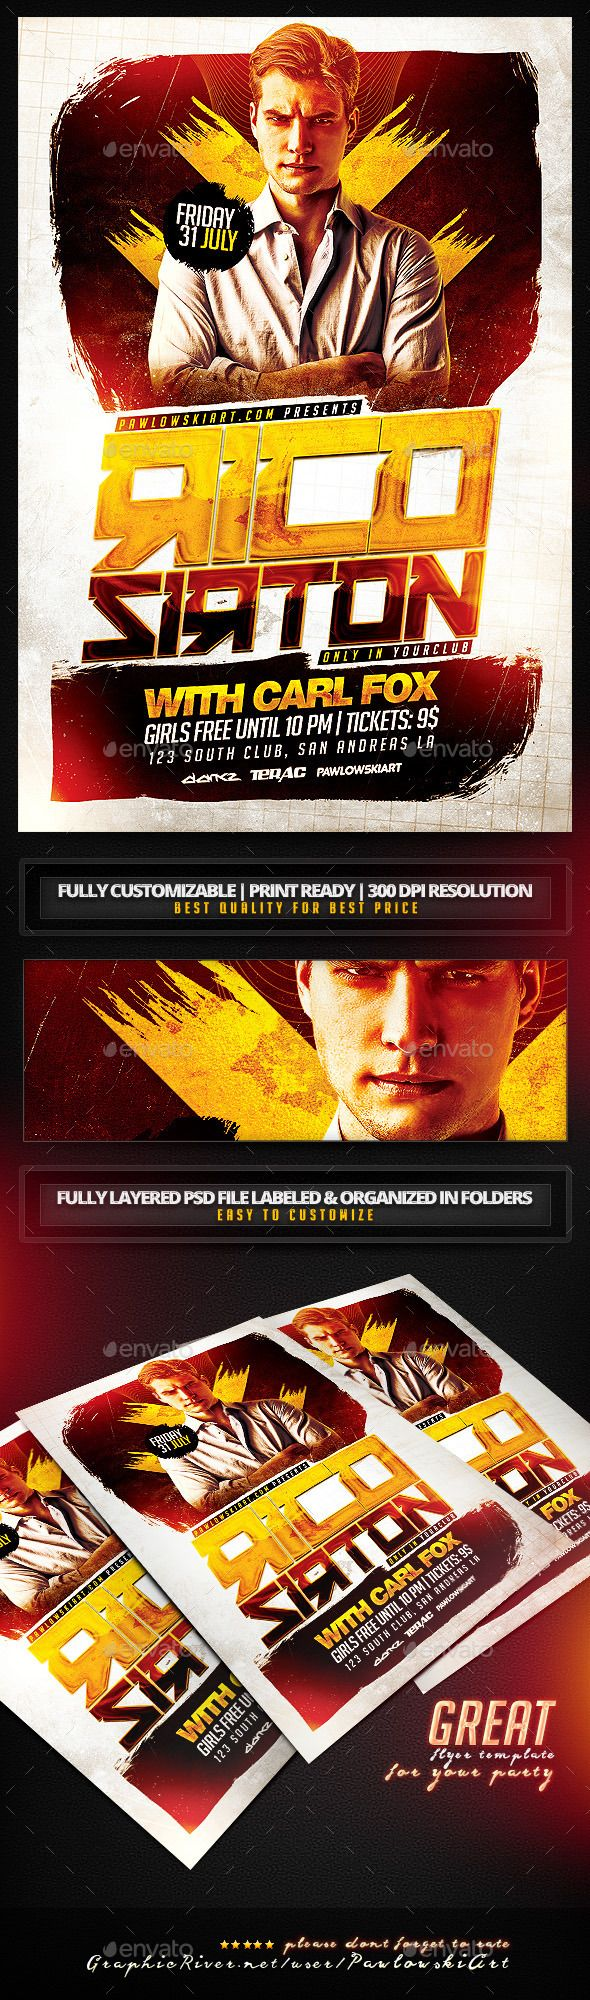 Special Guest DJ v4 PSD Flyer Template - Clubs & Parties Events